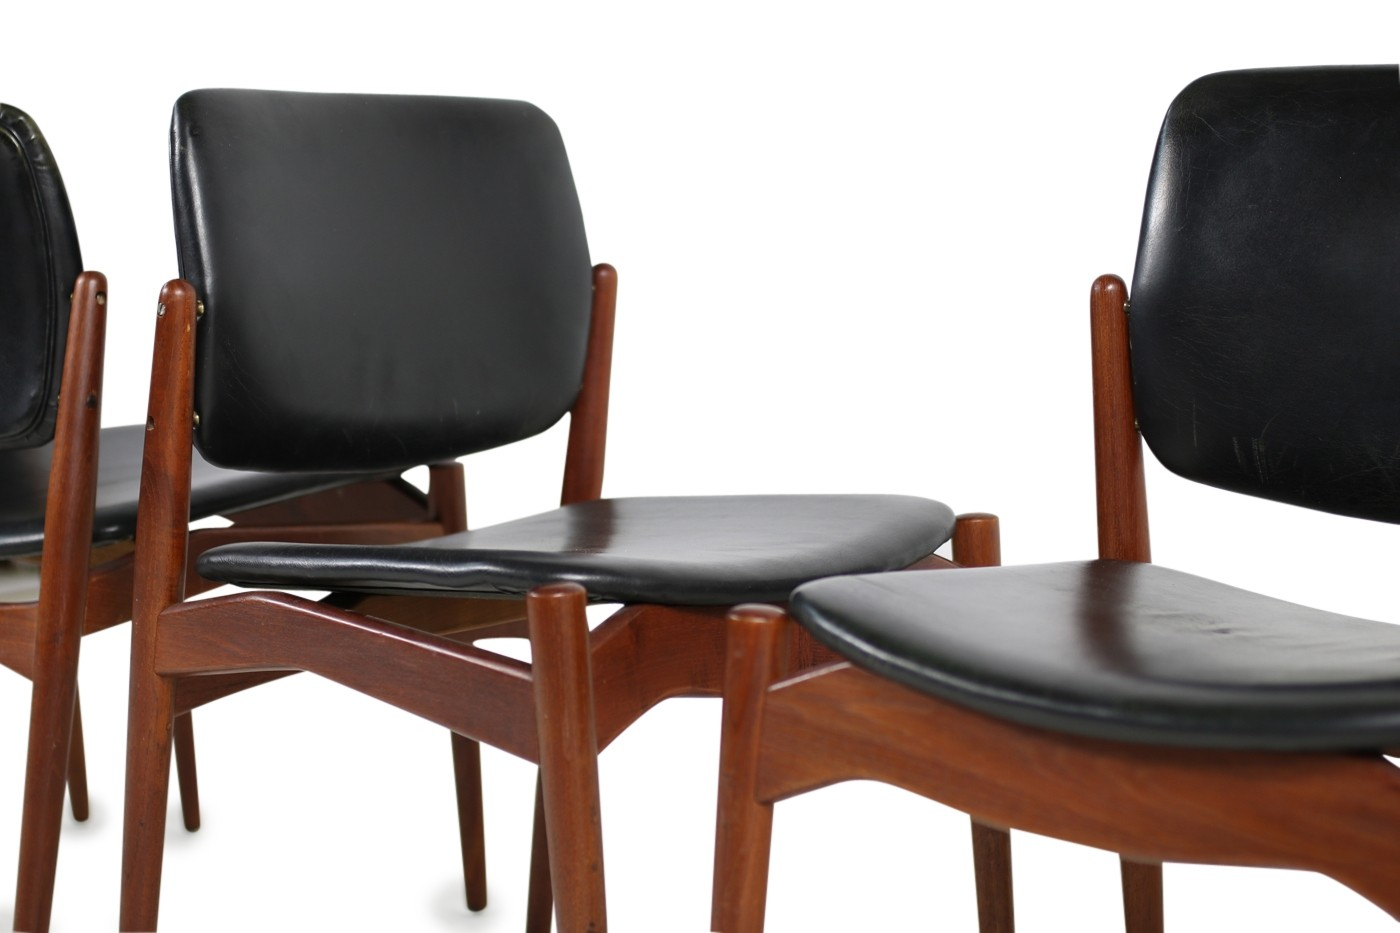 erik buck chairs royal blue chair sashes for sale set of 5 teak and leather mod 66 Ørum